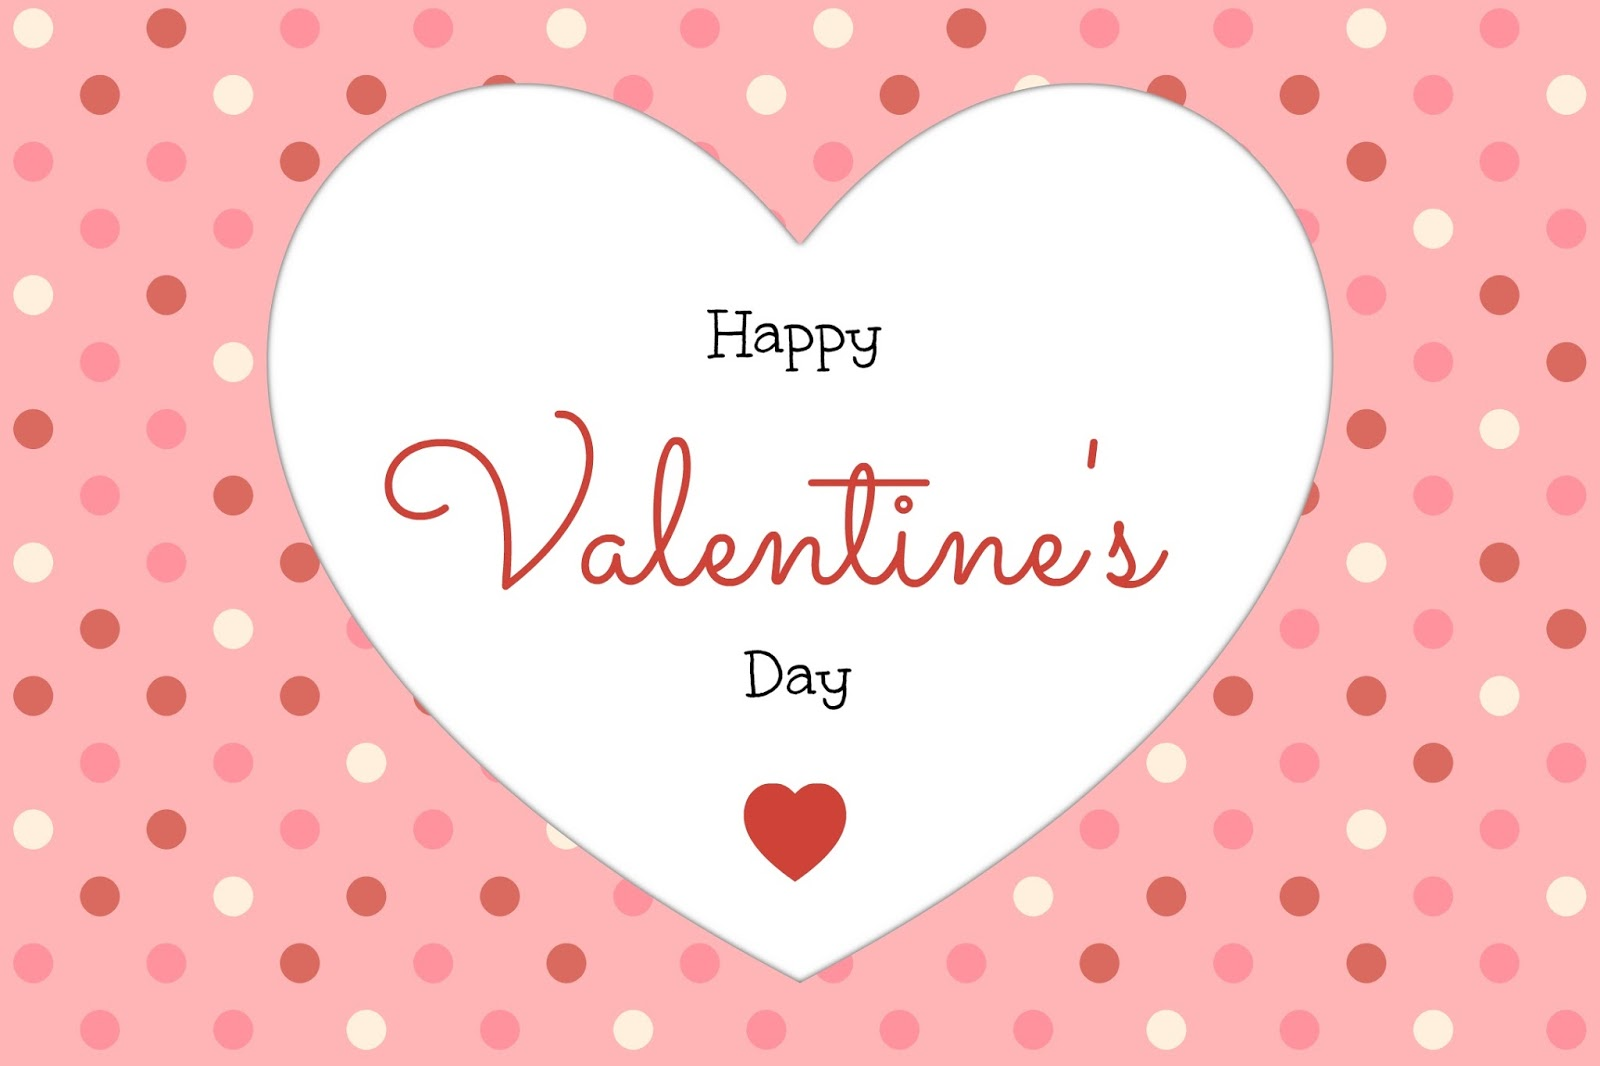 Happy Valentine Day Images Wishes Status Greetings Facebook